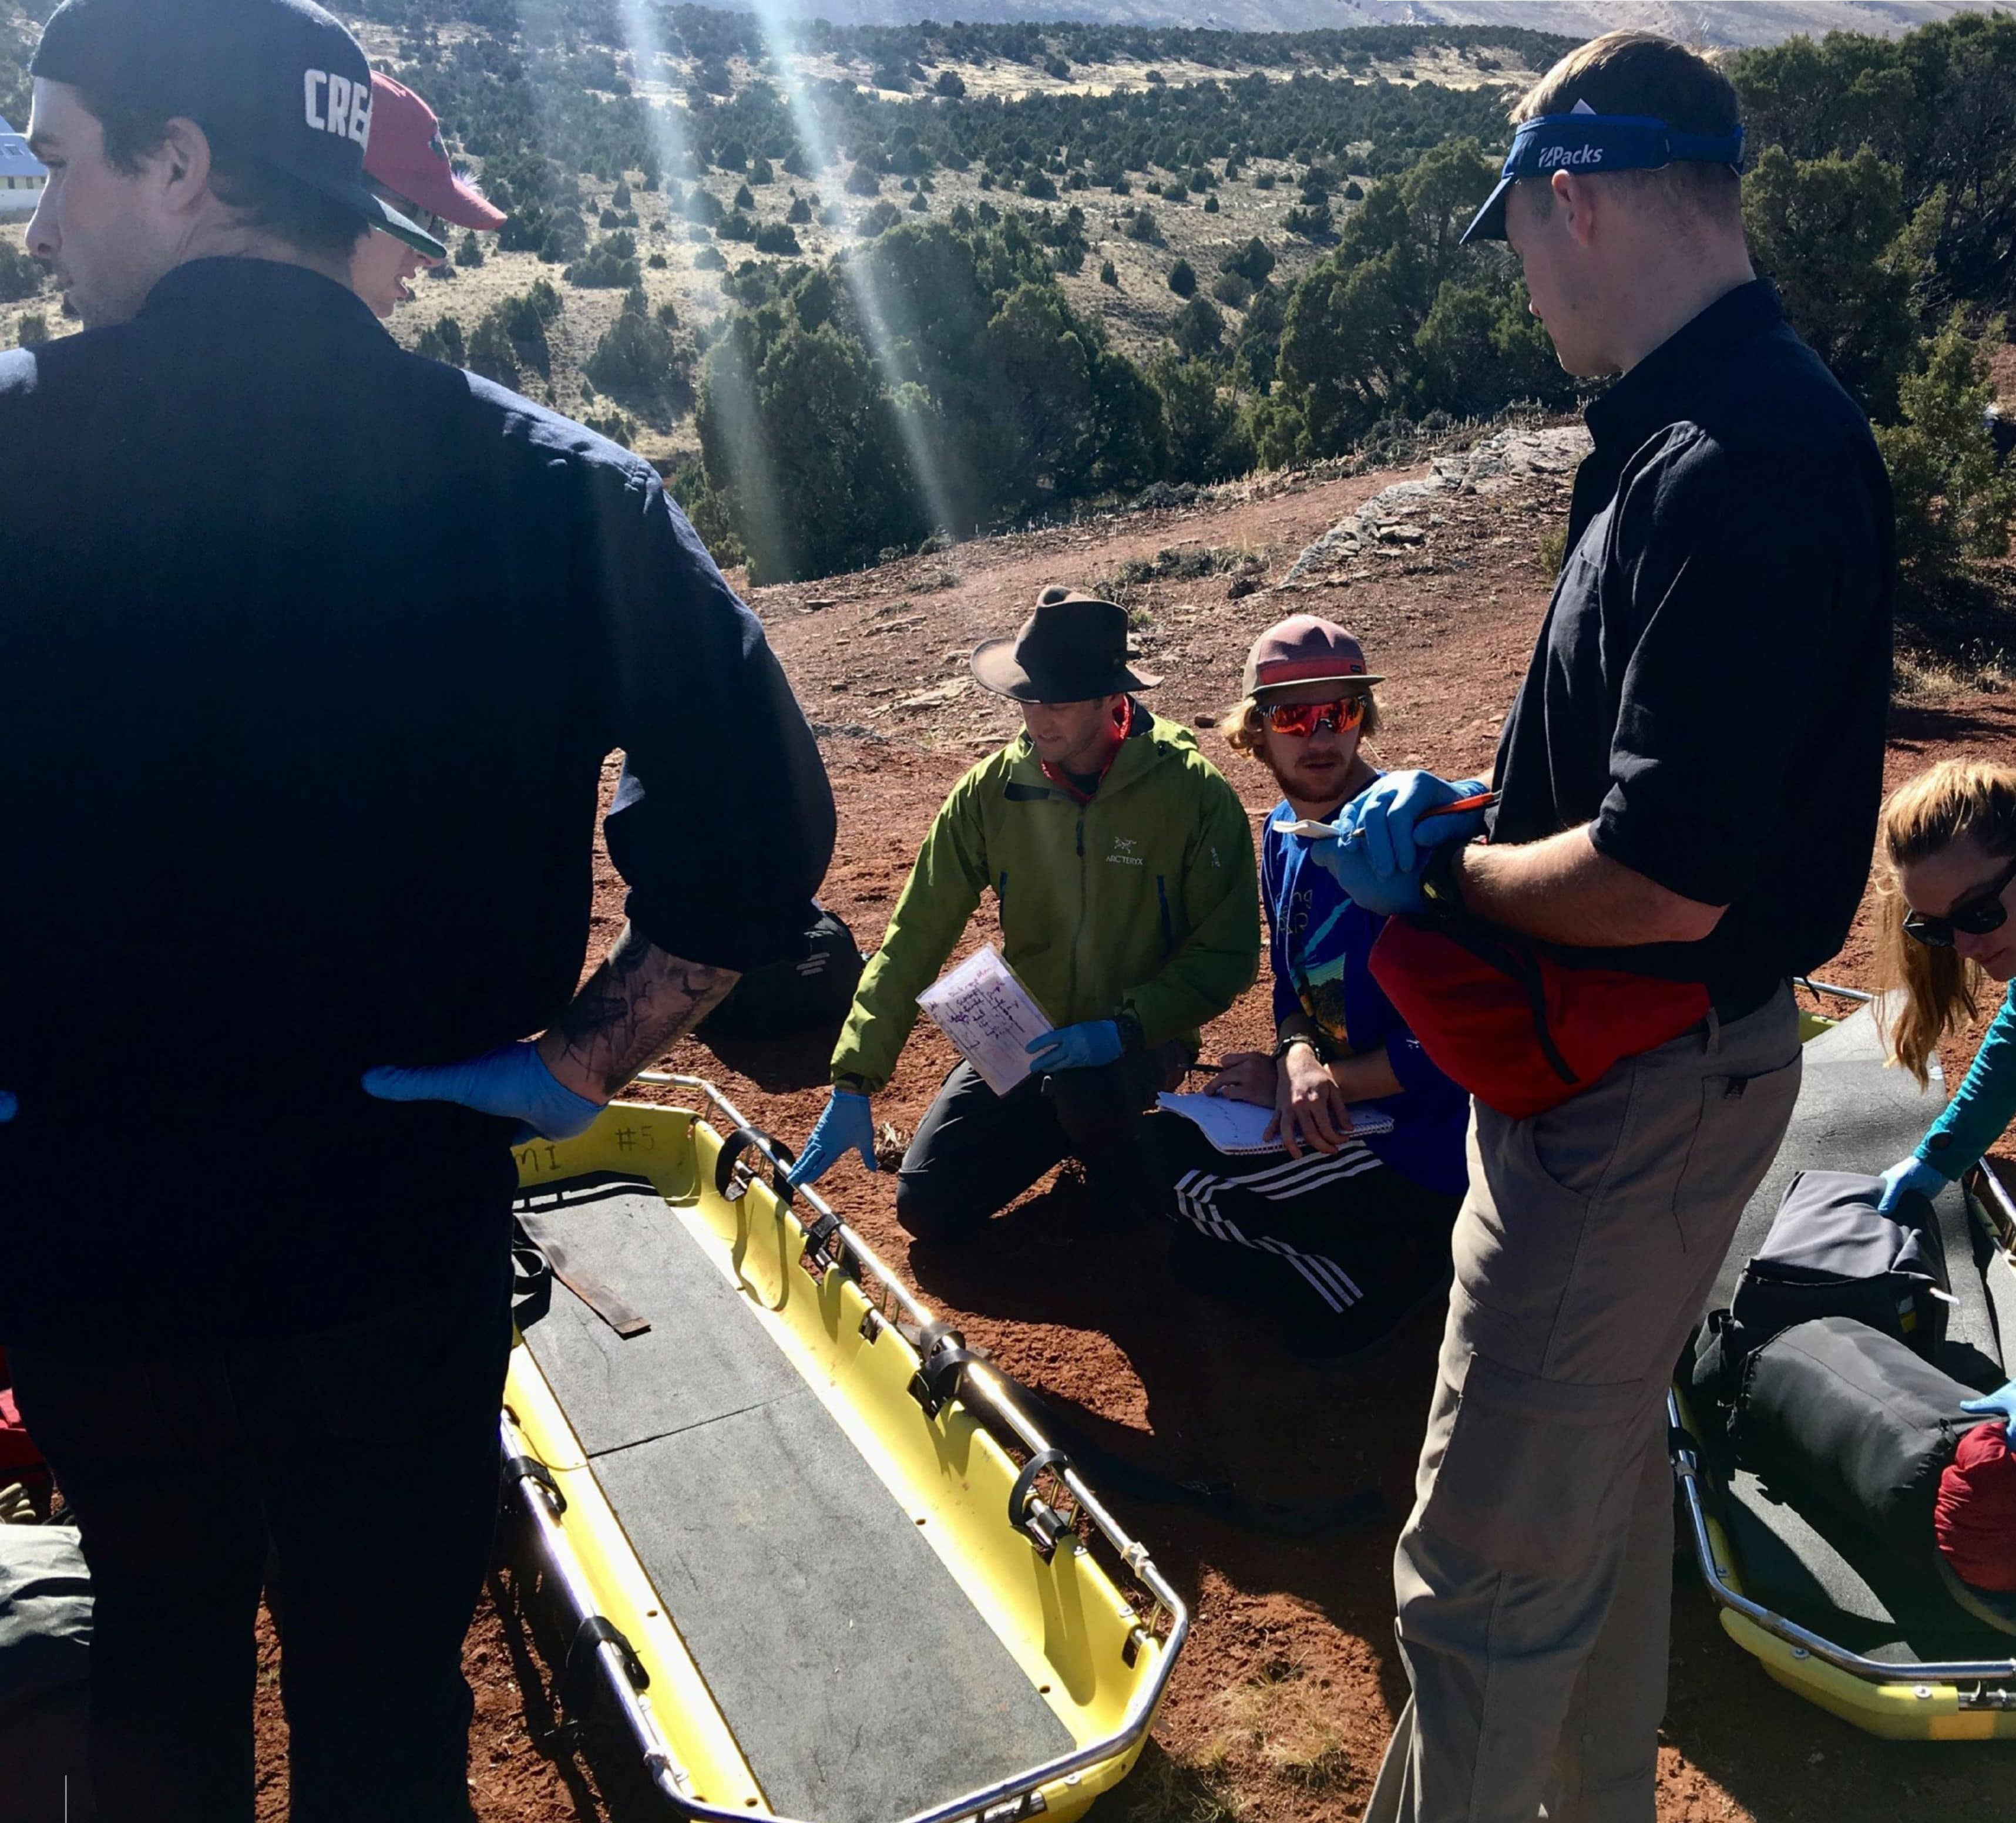 New System To Help In Backcountry Rescue Missions